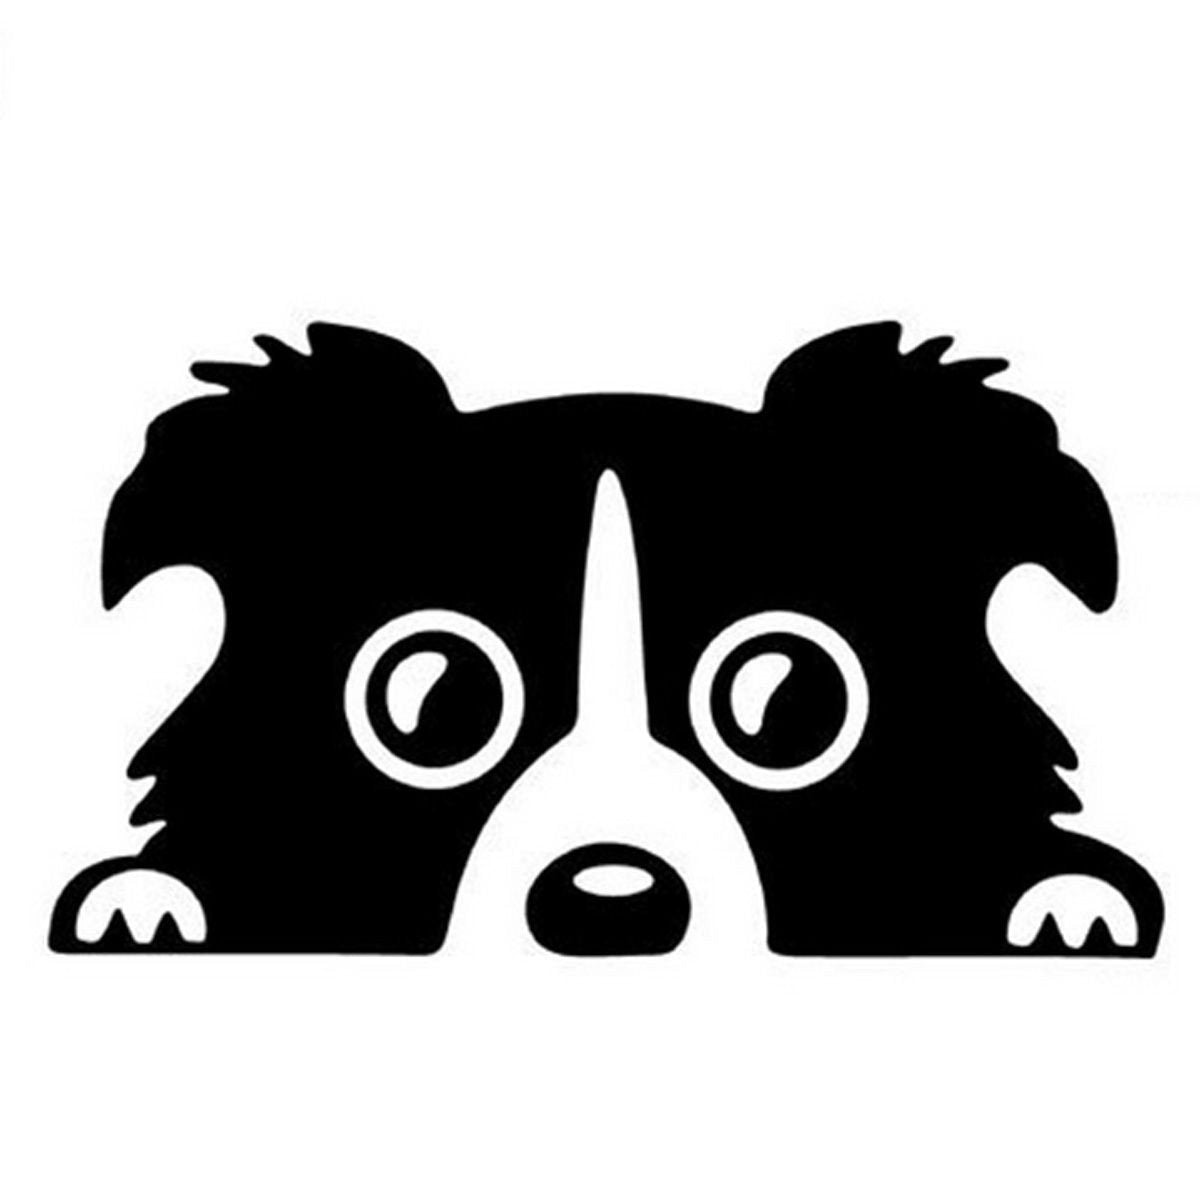 Border Collie Dog Puppy In Car Lady Car Window Truck Auto Bumper Laptop Sticker